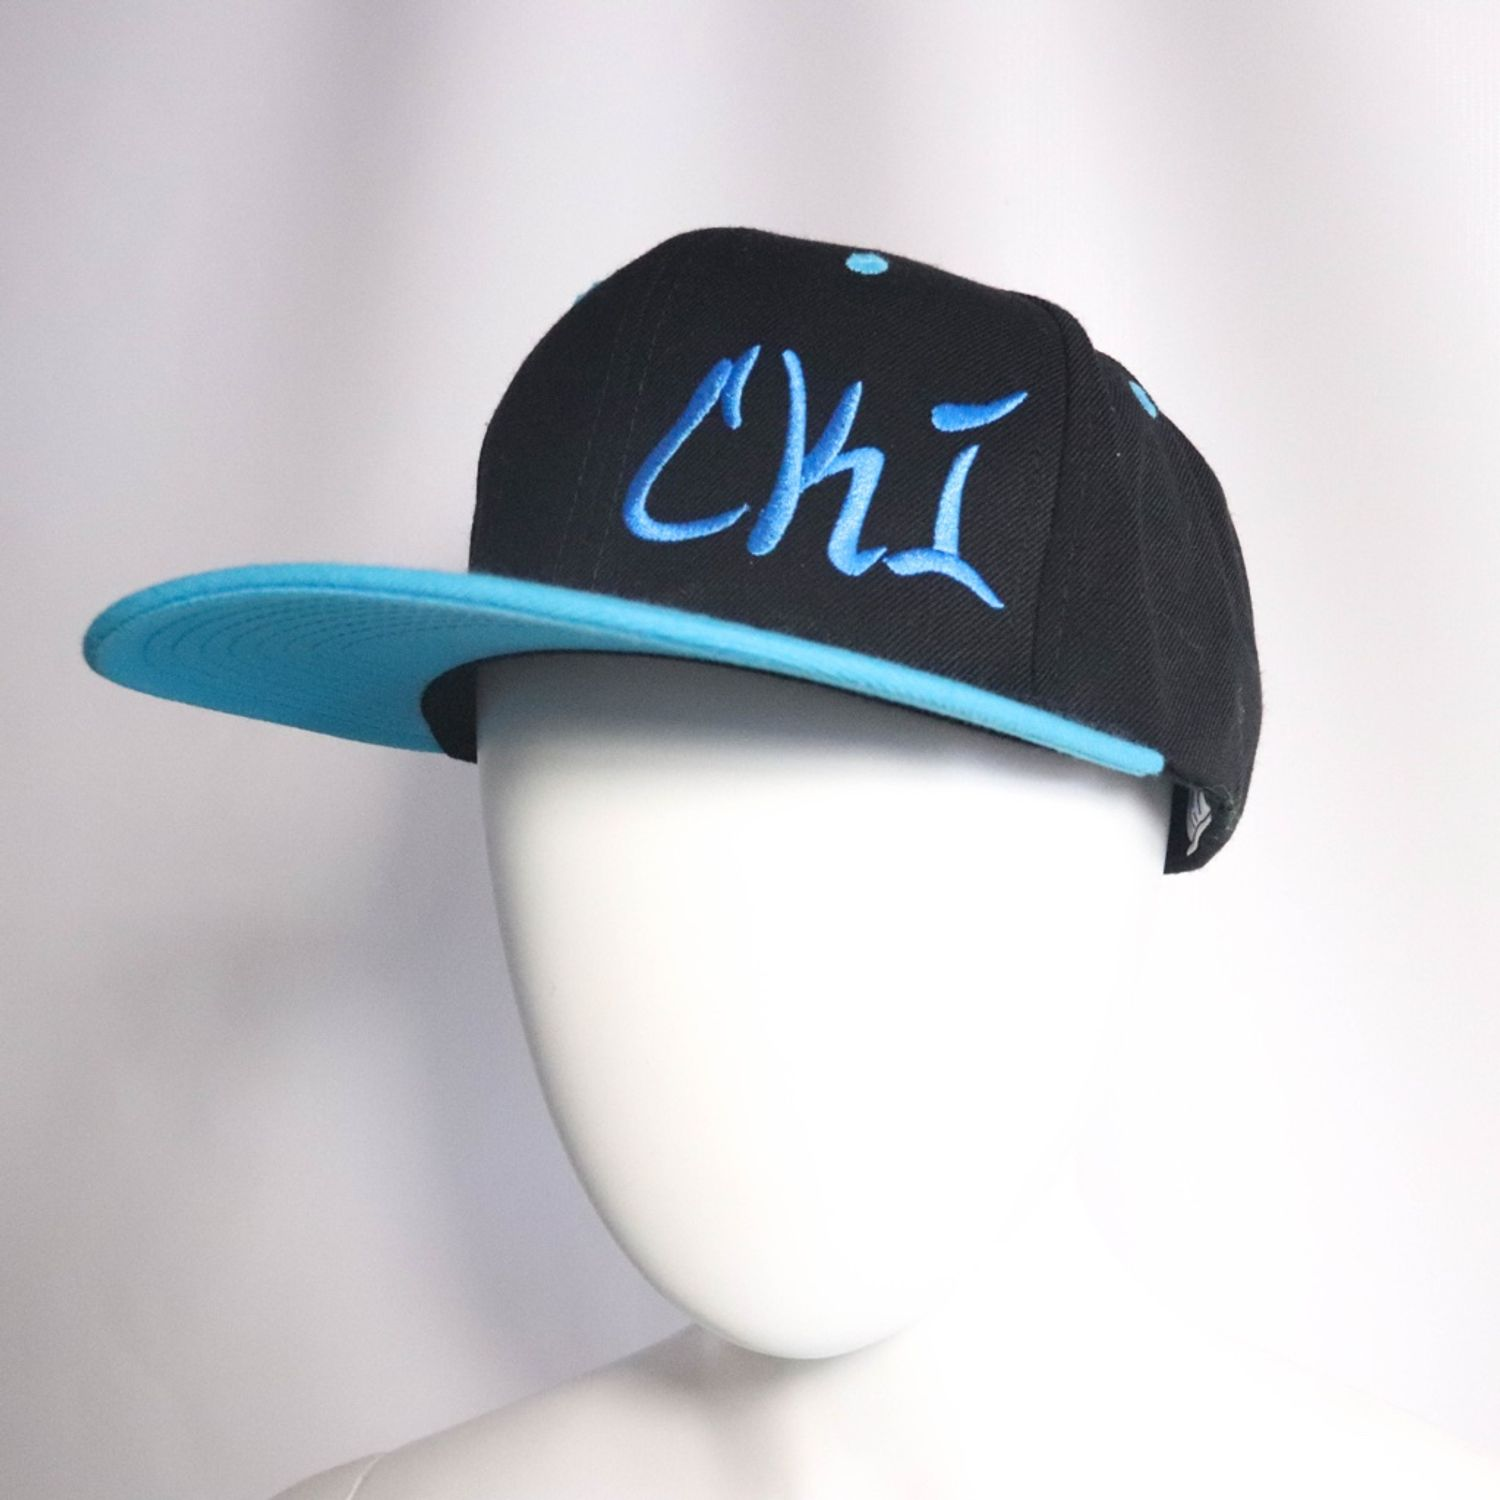 Black Blue Embroidered Chi Yoga Snapback Baseball Hat Cap One Size Fits Most We do this with marketing and advertising partners (who may have their own information they've collected). black blue embroidered chi yoga snapback baseball hat cap one size fits most